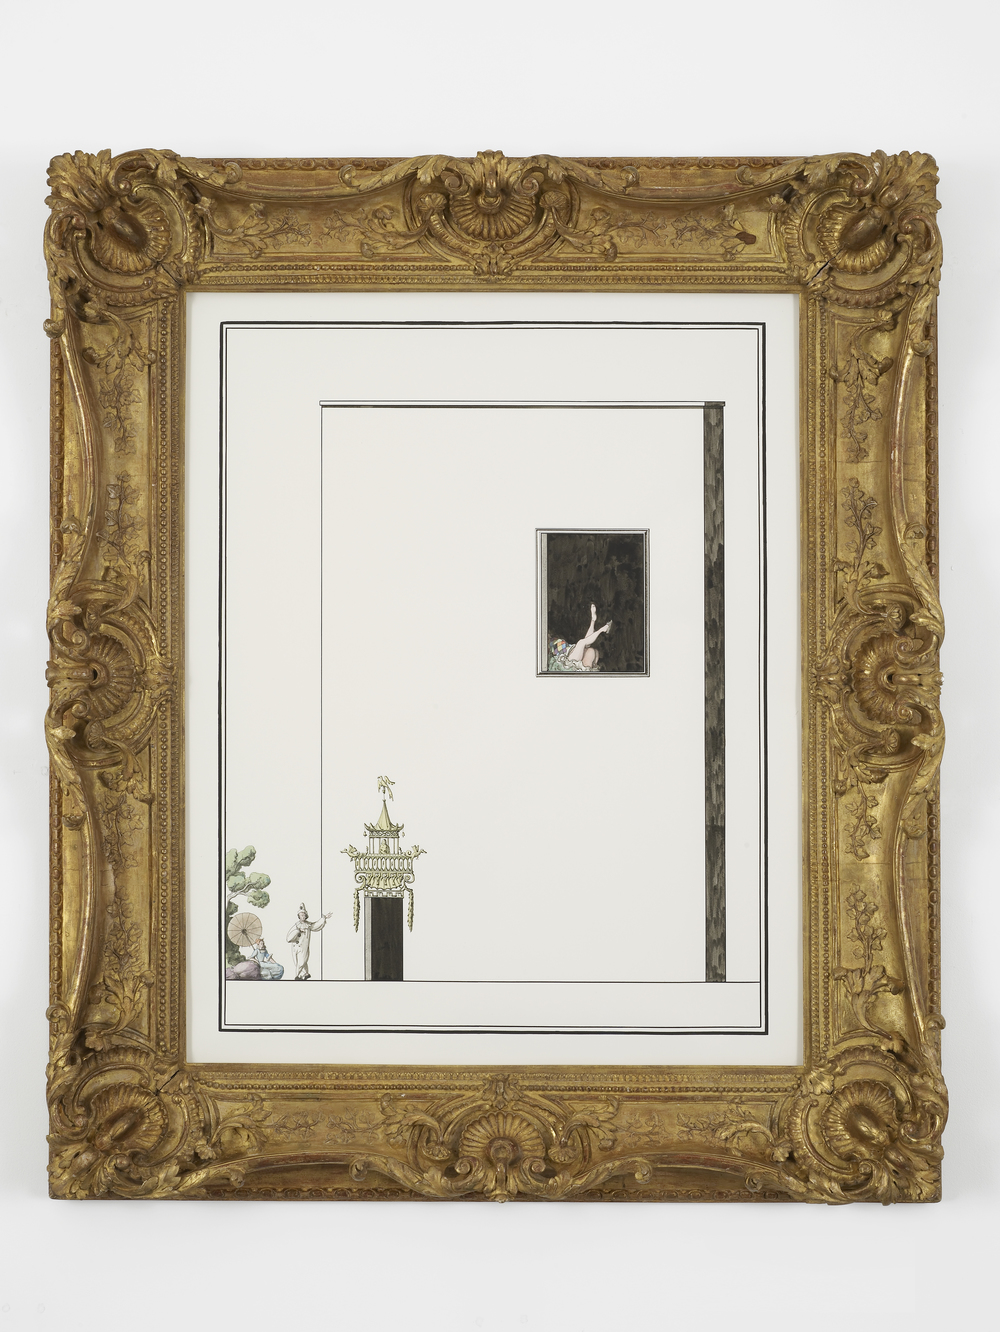 Scene from the Commedia: Pierrot bores Columbine with a detailed description of an elaborate doorframe. Meanwhile, Harlequin has sex with a servant upstairs 2014 Ink and watercolour on paper in artist's frame 120.5 x 102 x 10 cm / 47.4 x 40.1 x 3.9 in